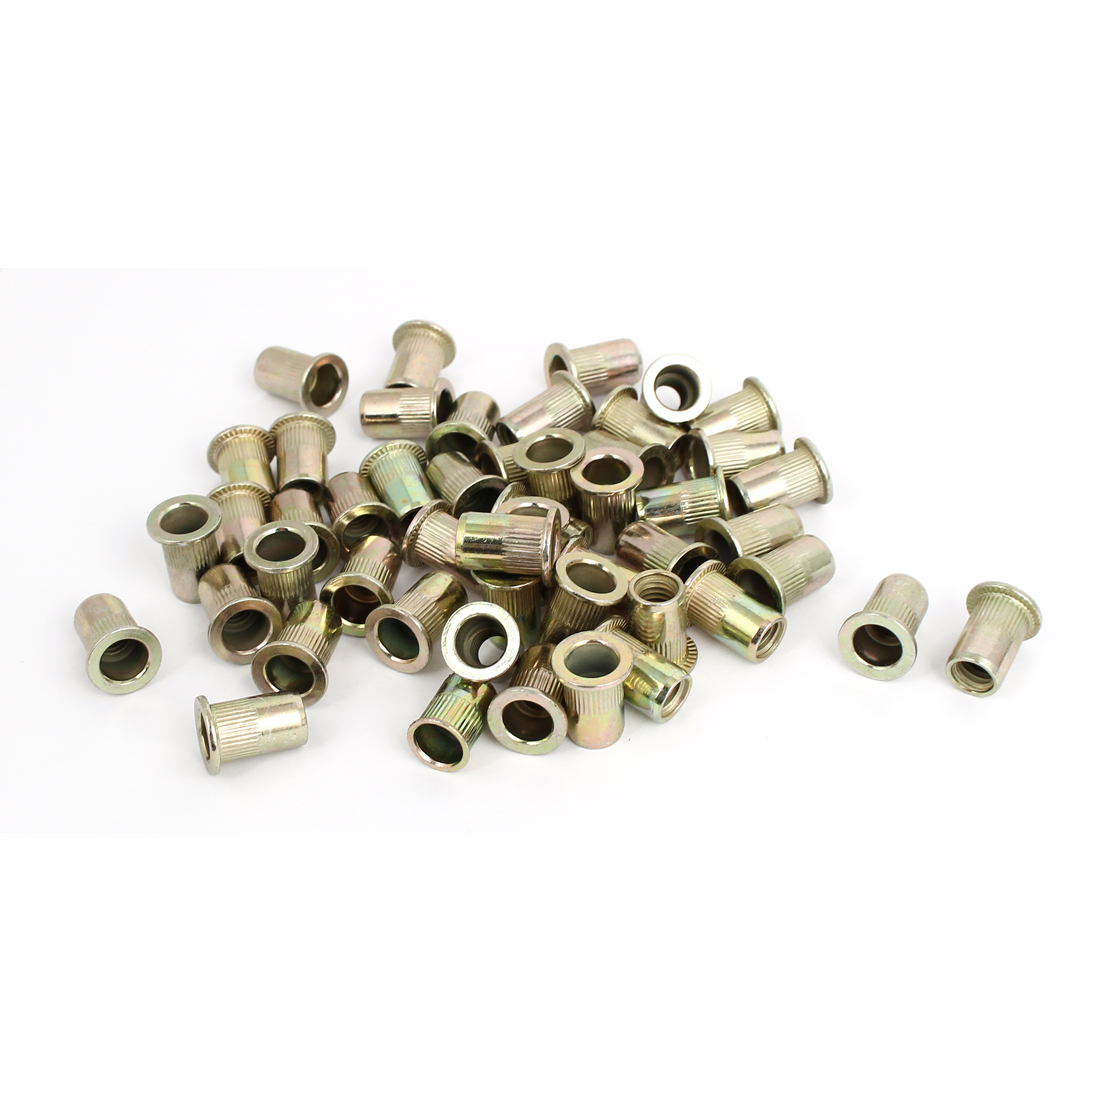 "5/16"" Thread 18mm Long Rivet Nut Insert Nutsert 50pcs"